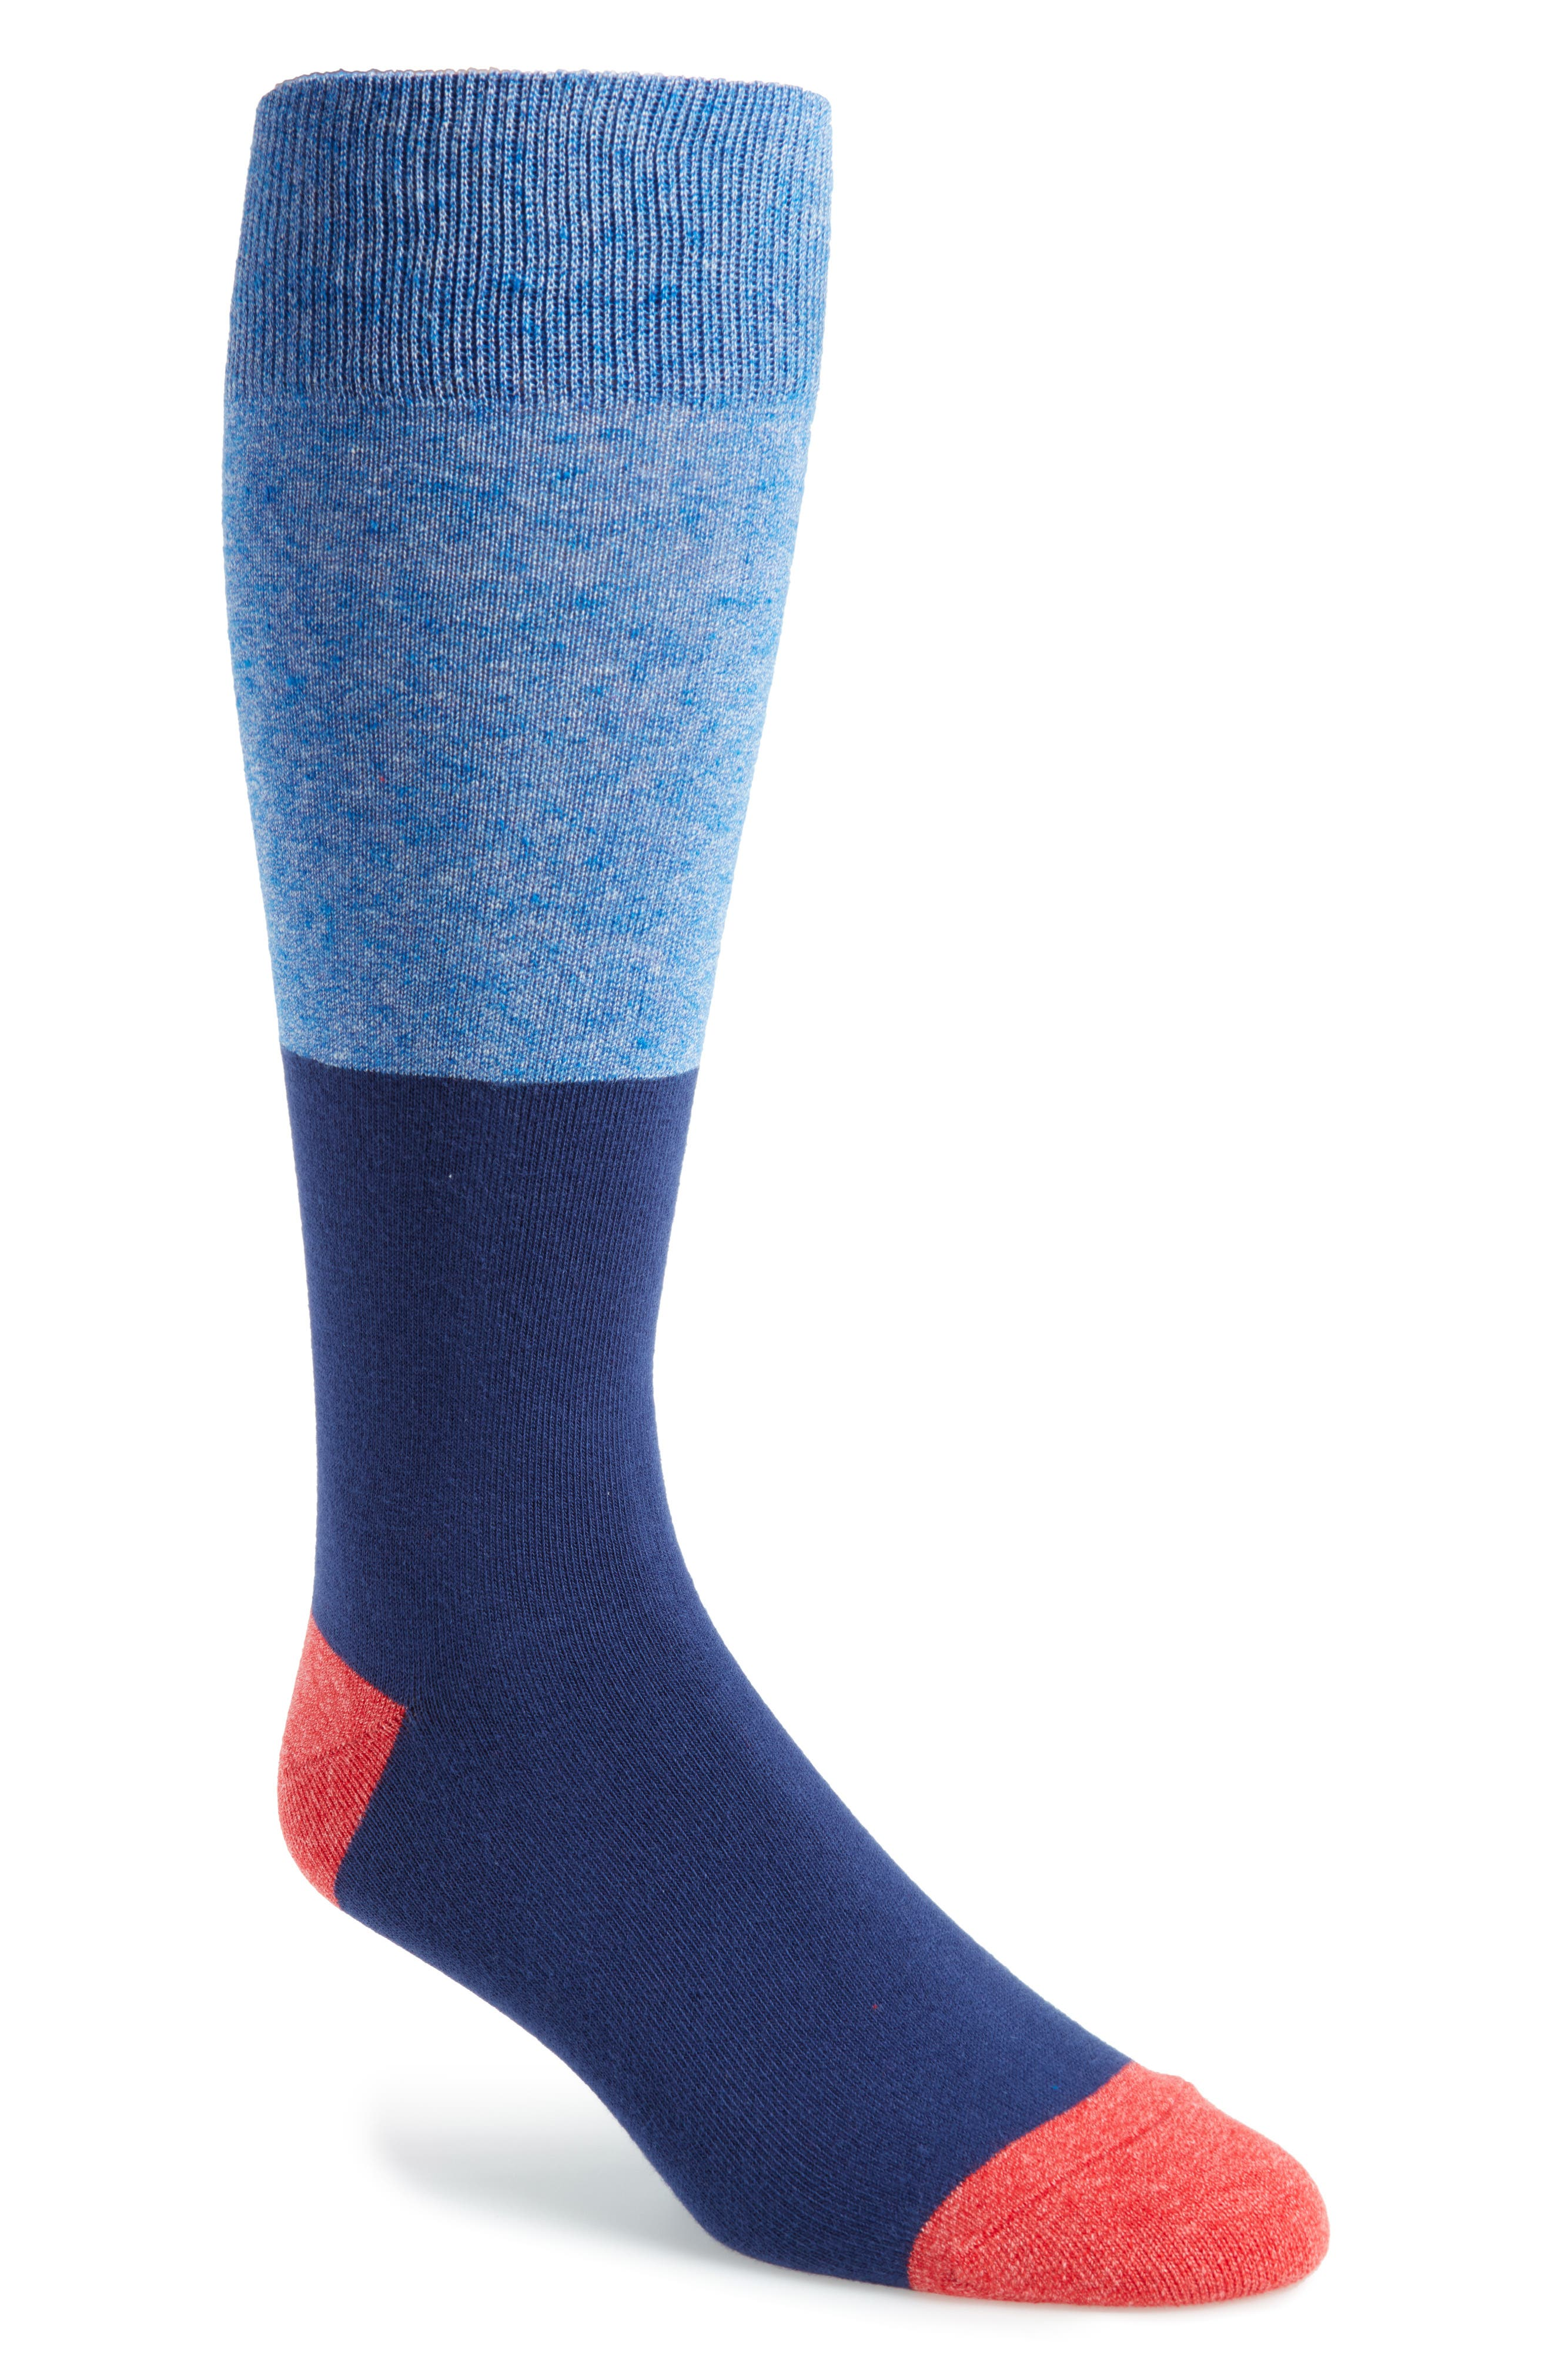 Colorblock Socks,                         Main,                         color, Navy/ Red